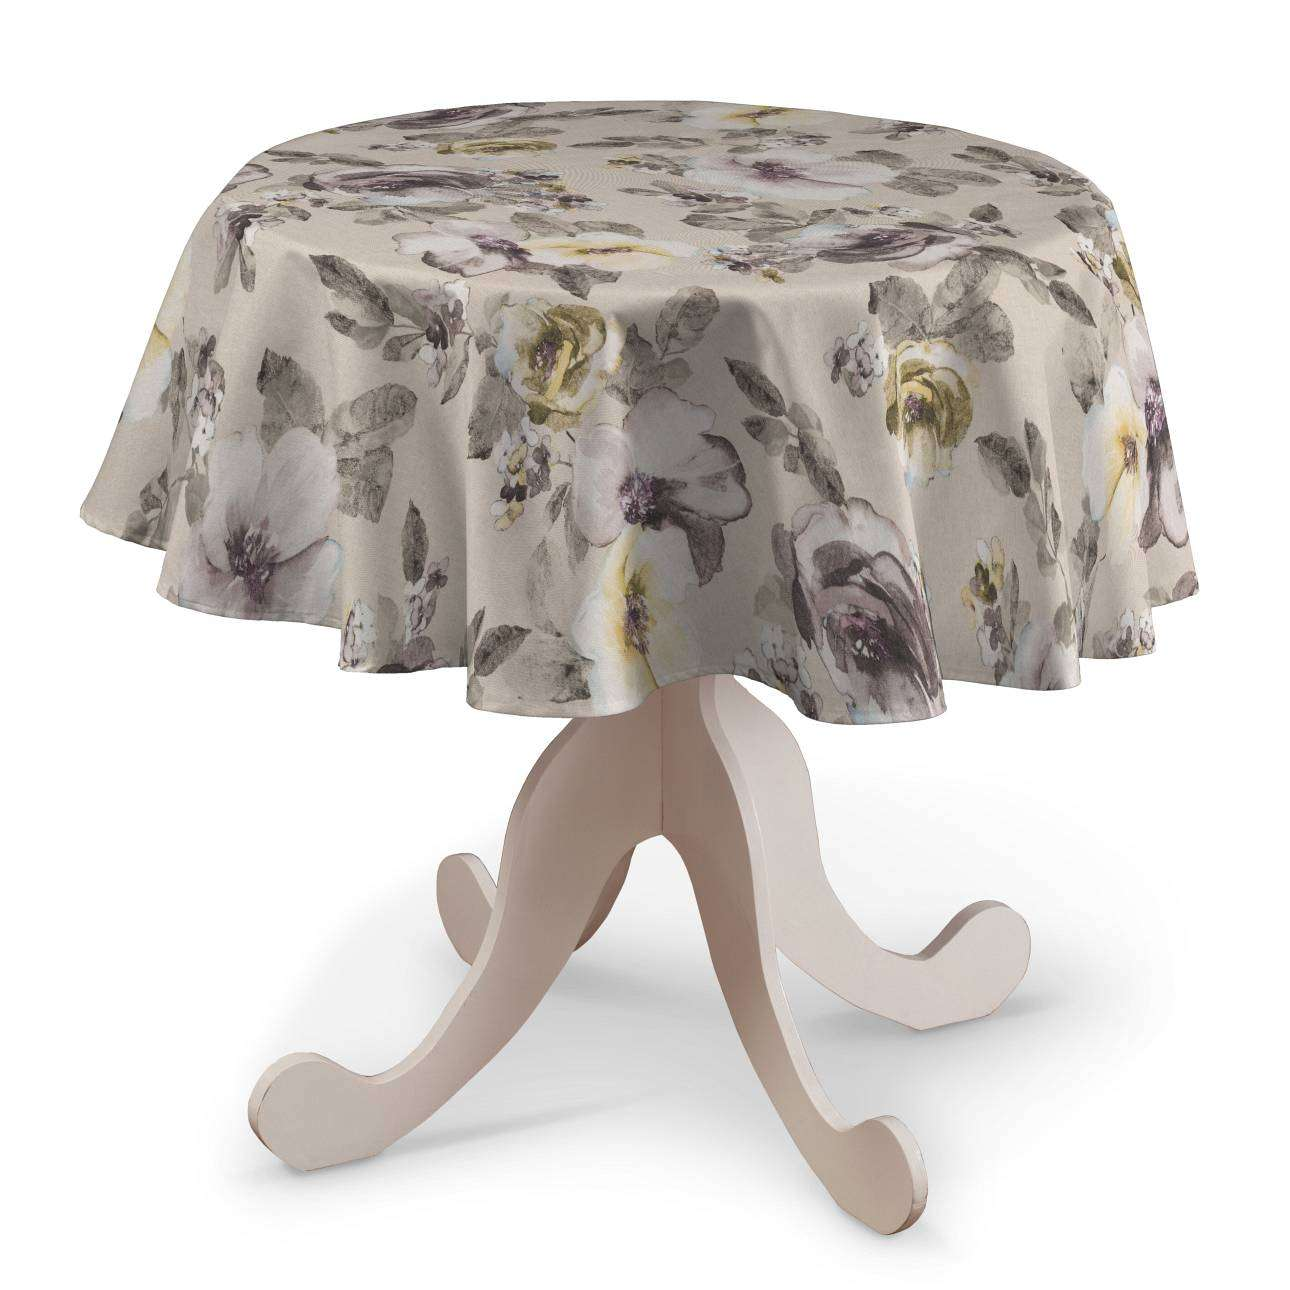 Round tablecloth in collection Londres, fabric: 140-44